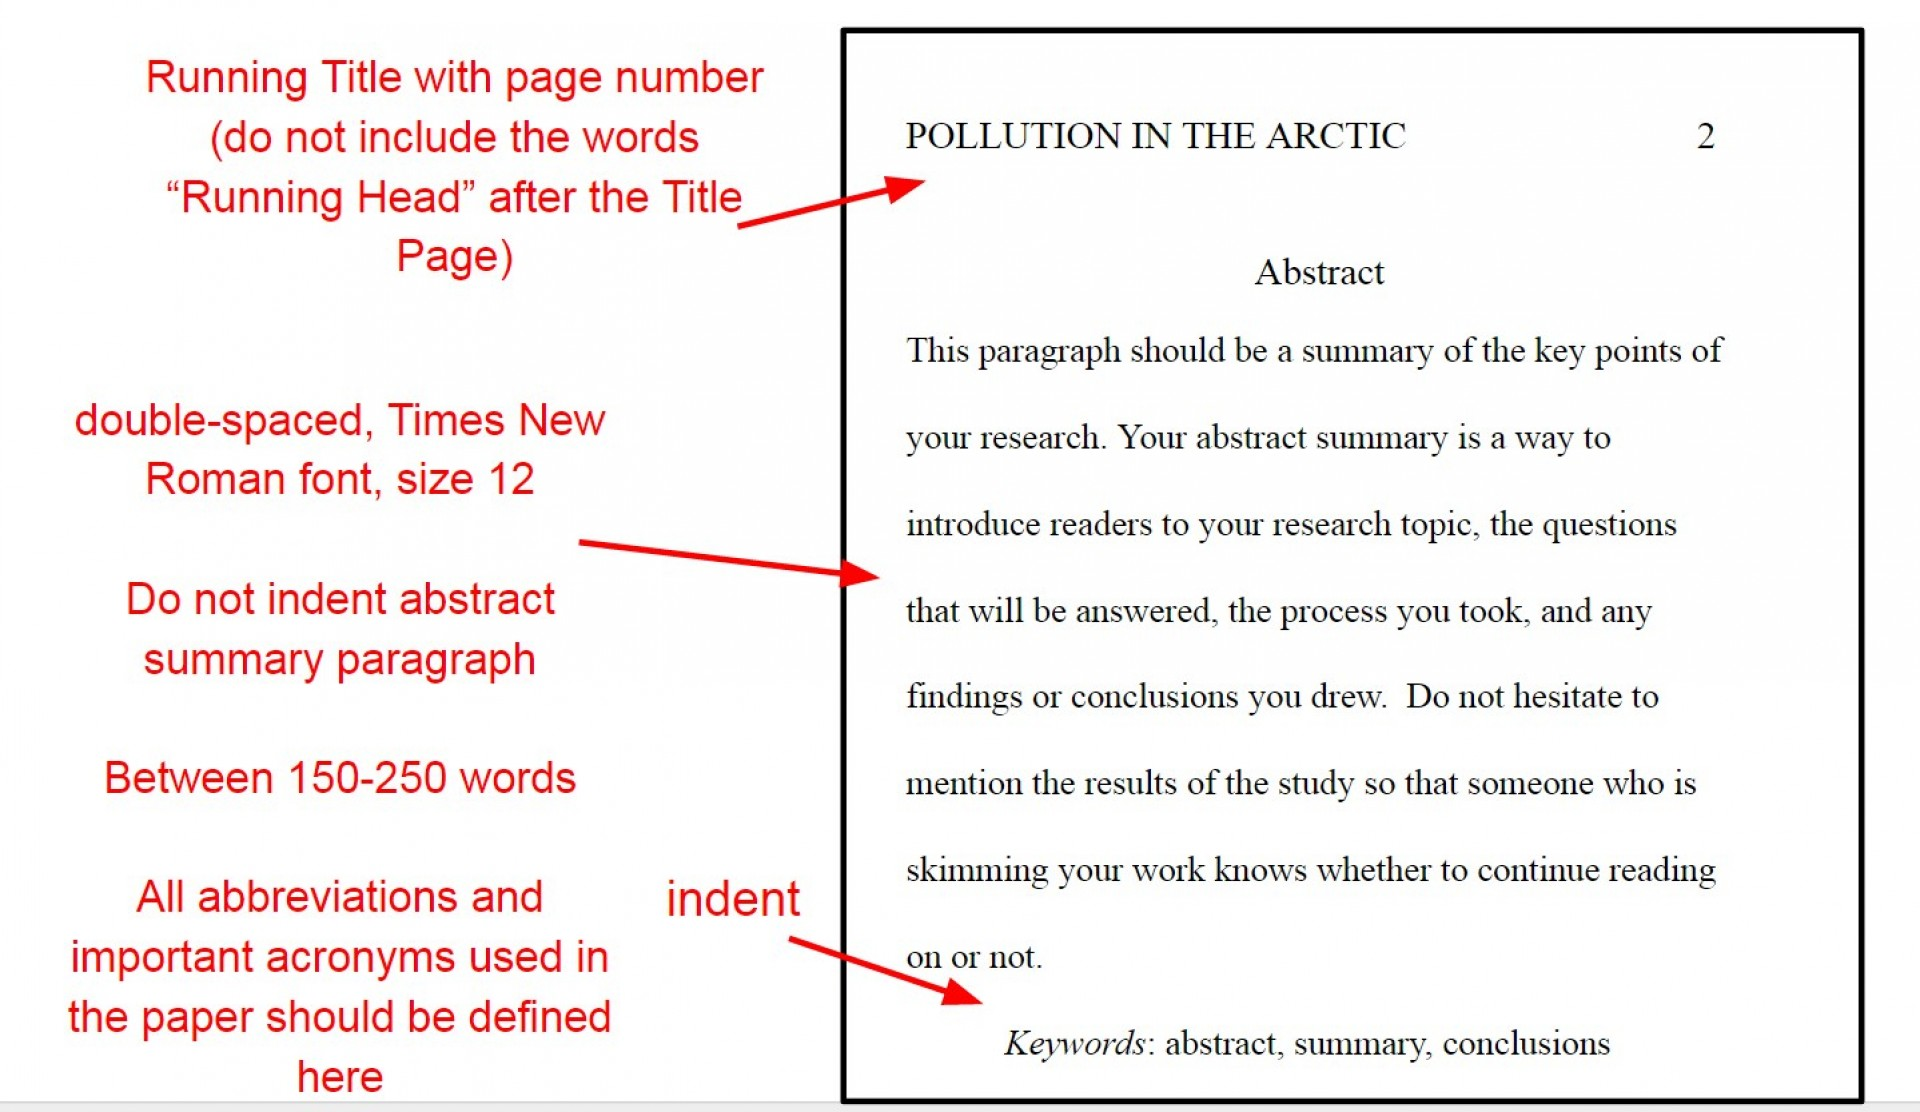 006 Research Paper In Apa Format Impressive Citing Example Examples Of Outlines 1920